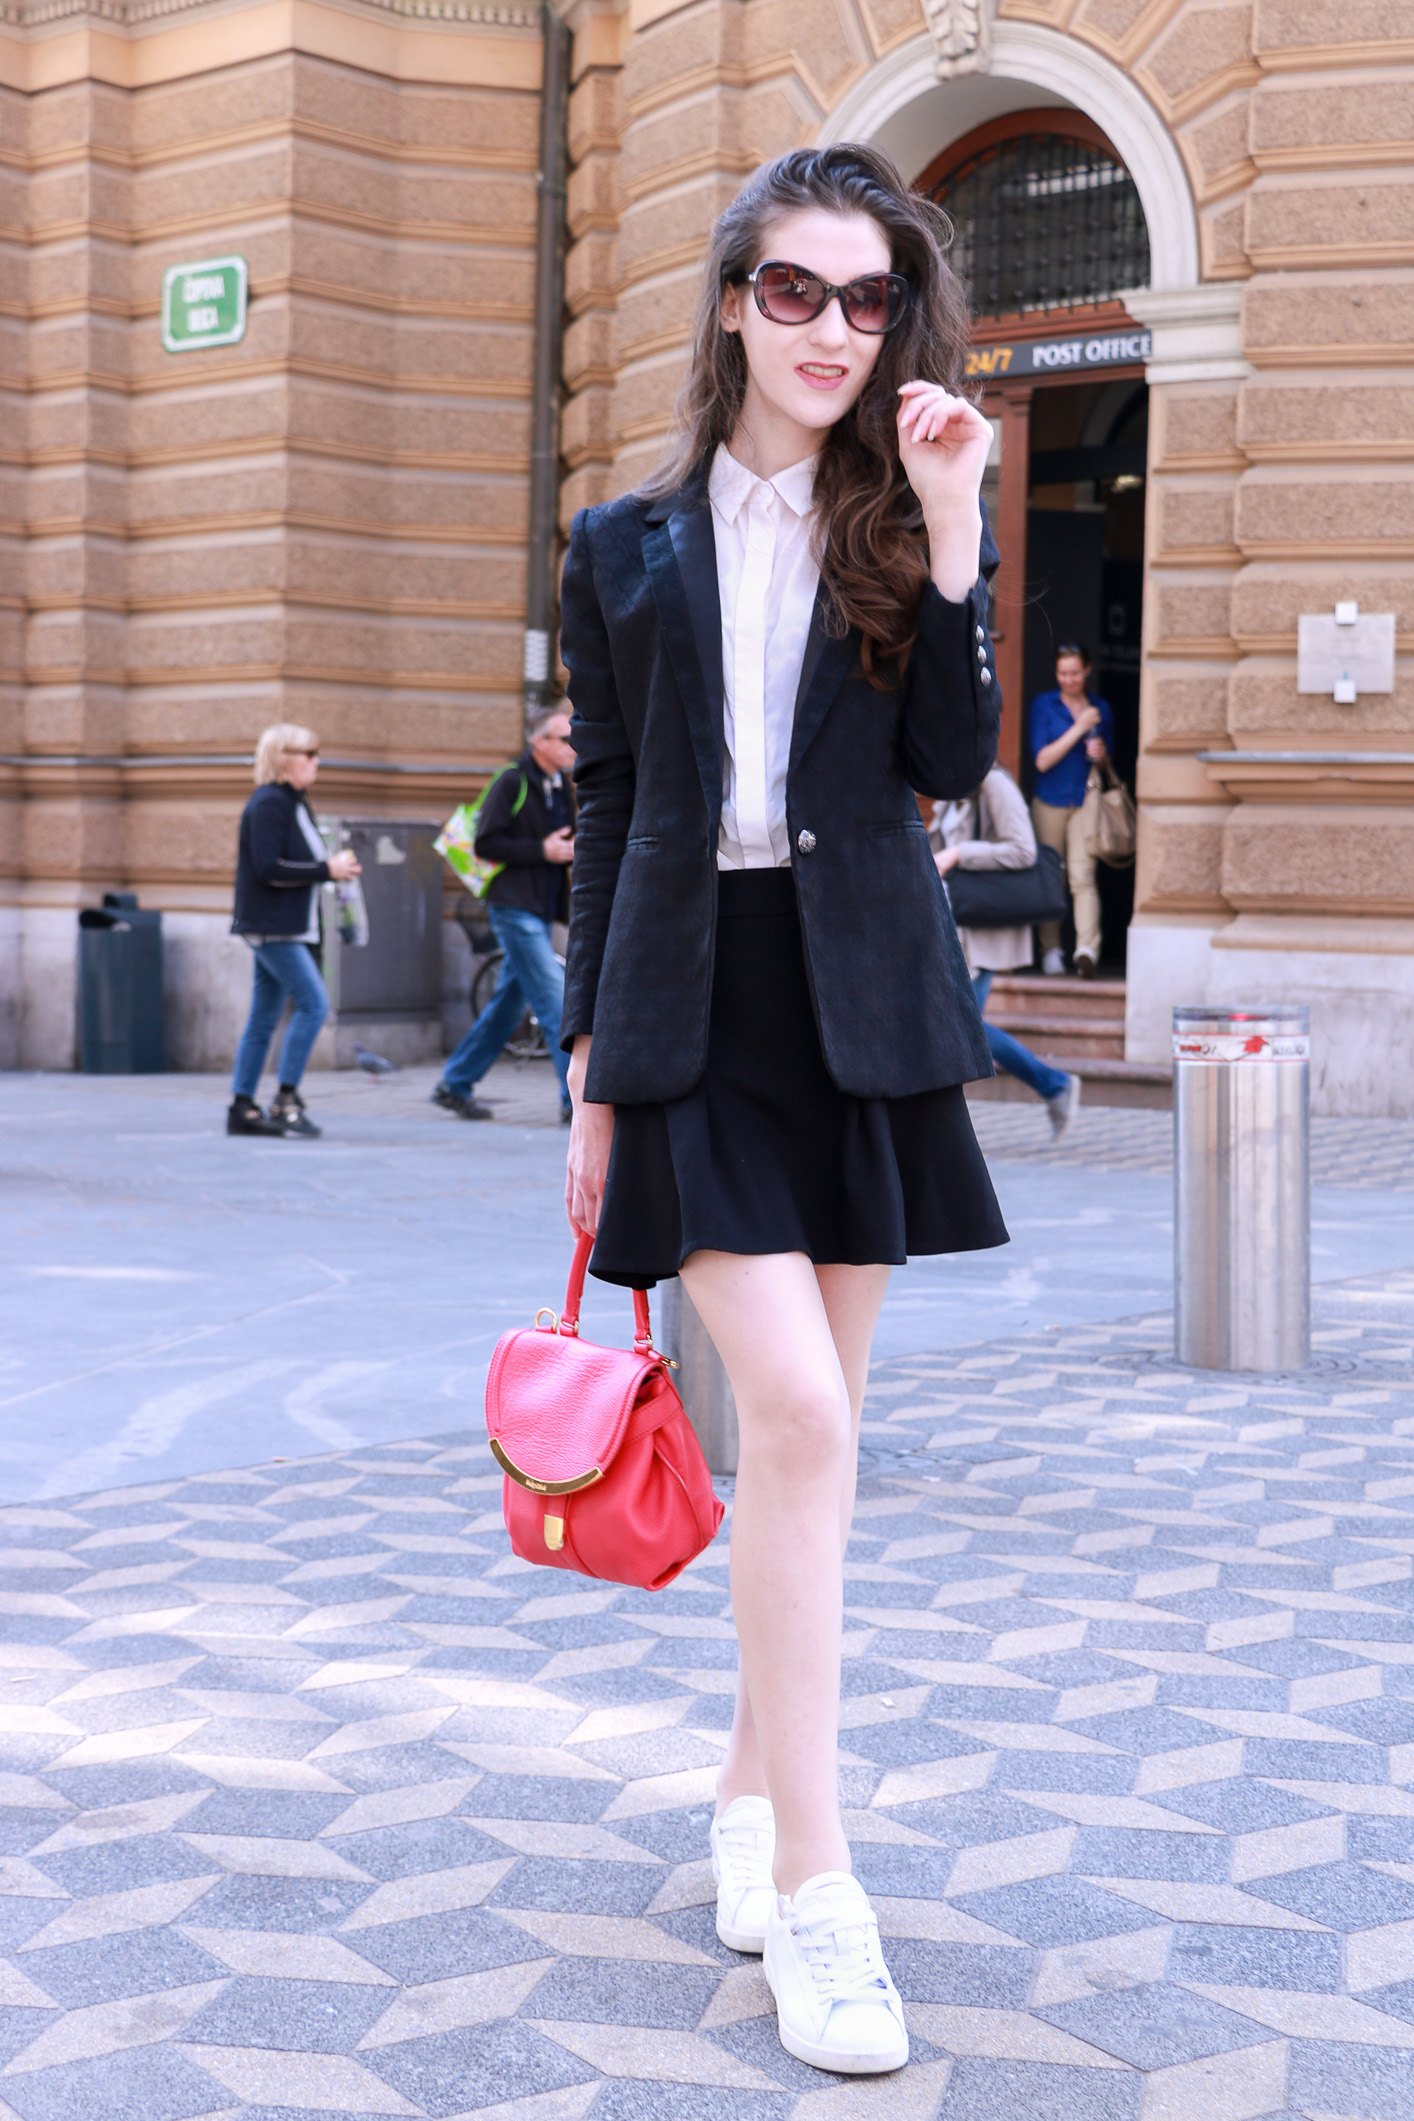 Fashion blogger Veronika Lipar of Brunette From Wall Street sharing her favourite skater skirt outfits to wear on the weekend